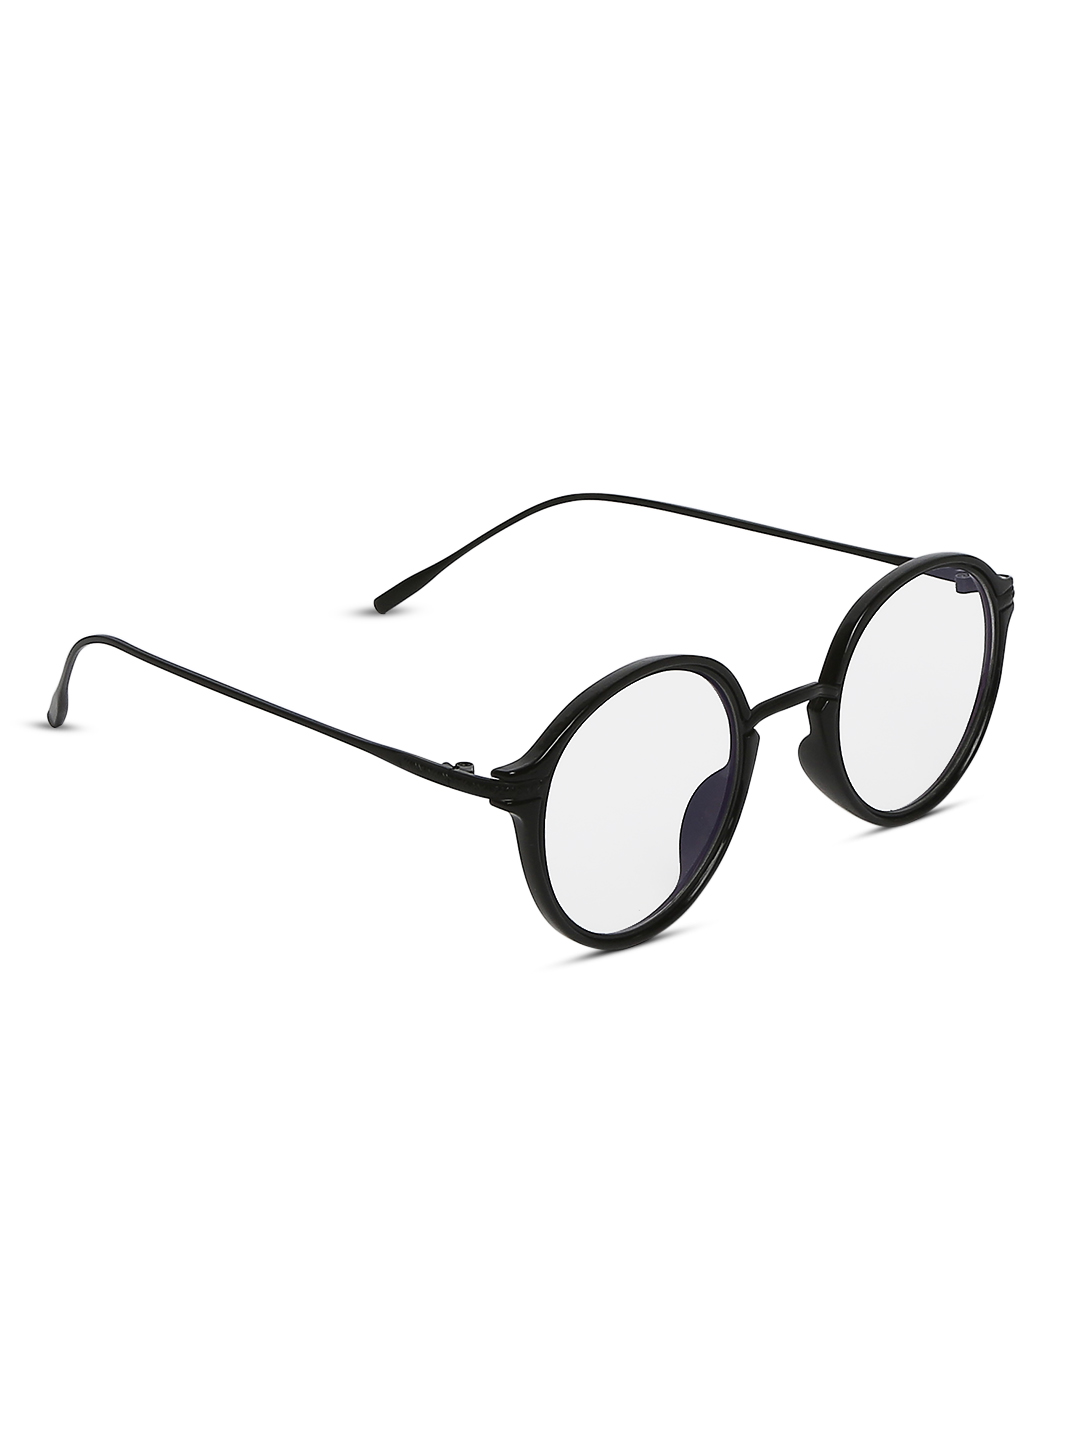 Sunglasses-Its Great To See You Clear Glasses3